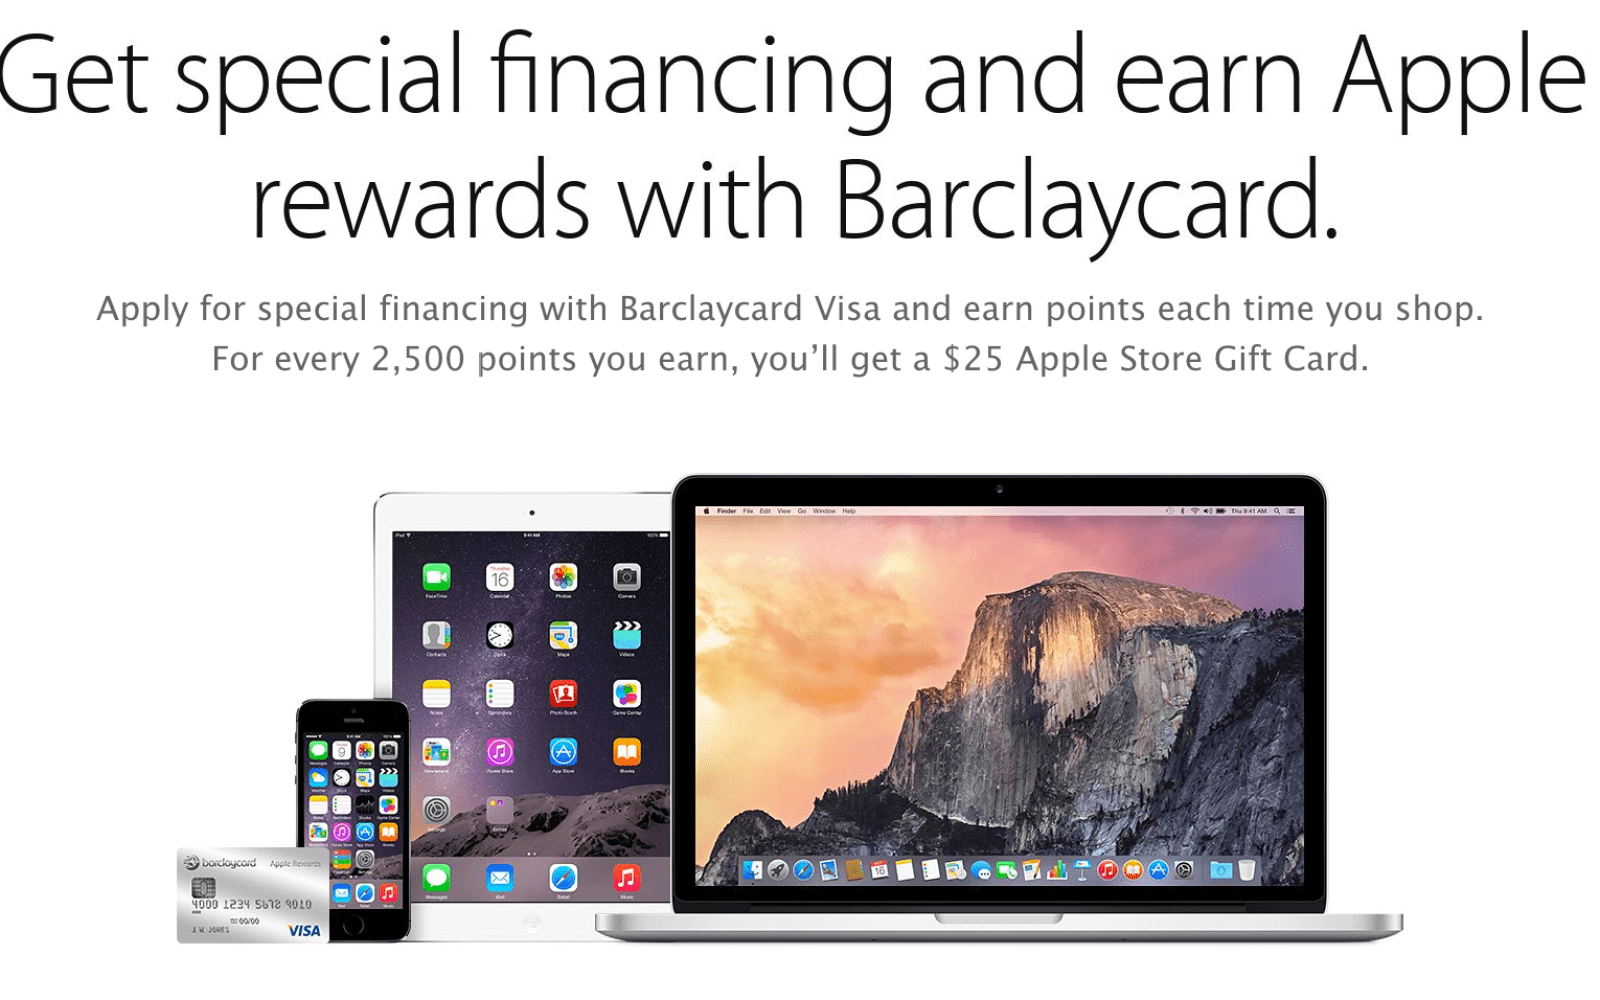 Apple & Barclaycard offer new Visa rewards card w/ Apple Store credit, chip-and-pin, & updated financing options